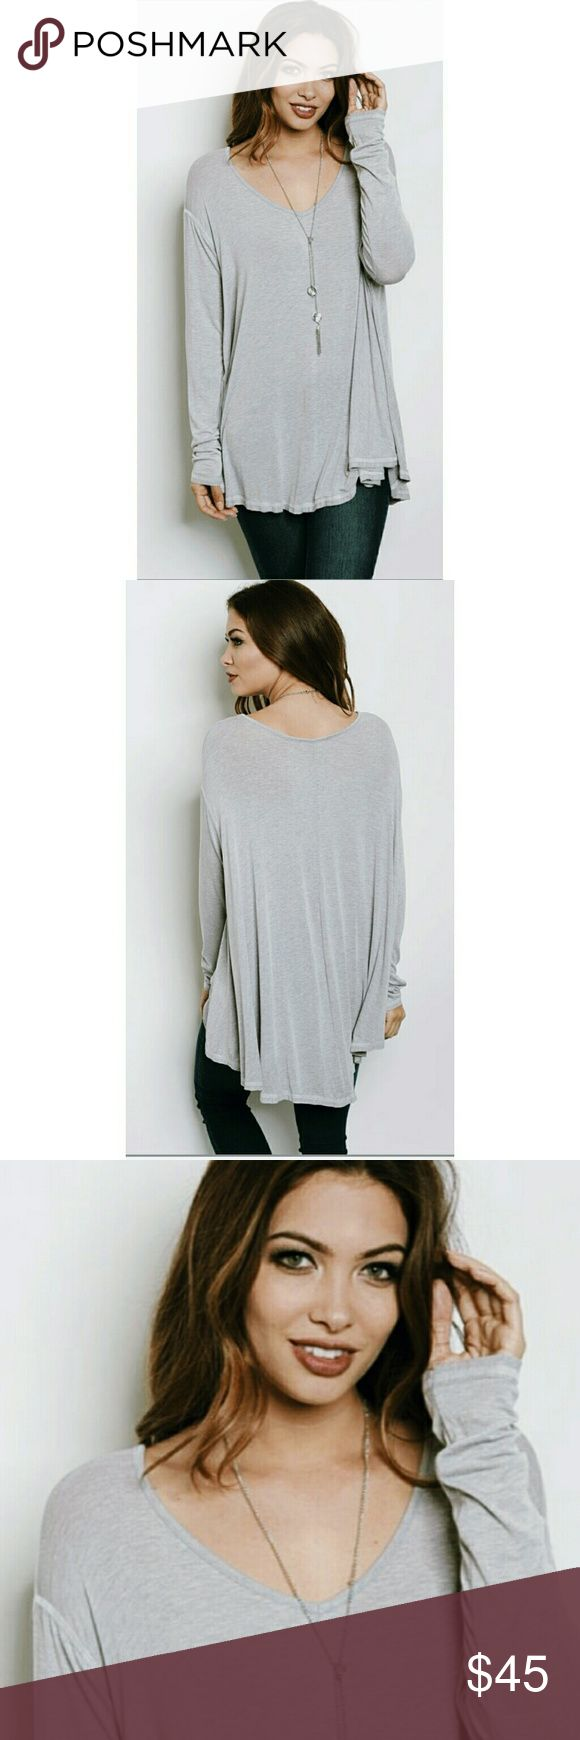 ⭐Luxe V-Neck Jersey Tunic GREY Essential Wardrobe Piece Luxe Soft & Comfy - The Perfect T-Shirt!  My personal favorite!  ❤☄❤  High Quality Fabric  Lightweight - Perfect for spring! Fabric Content: 83% Rayon  9% Polyester 8% Spandex  Made in the U.S.A. S-M-L  True to size   ▪ Price is Firm  ▪ No Trades  ▪ Fast Shipping Moda Ragazza  Tops